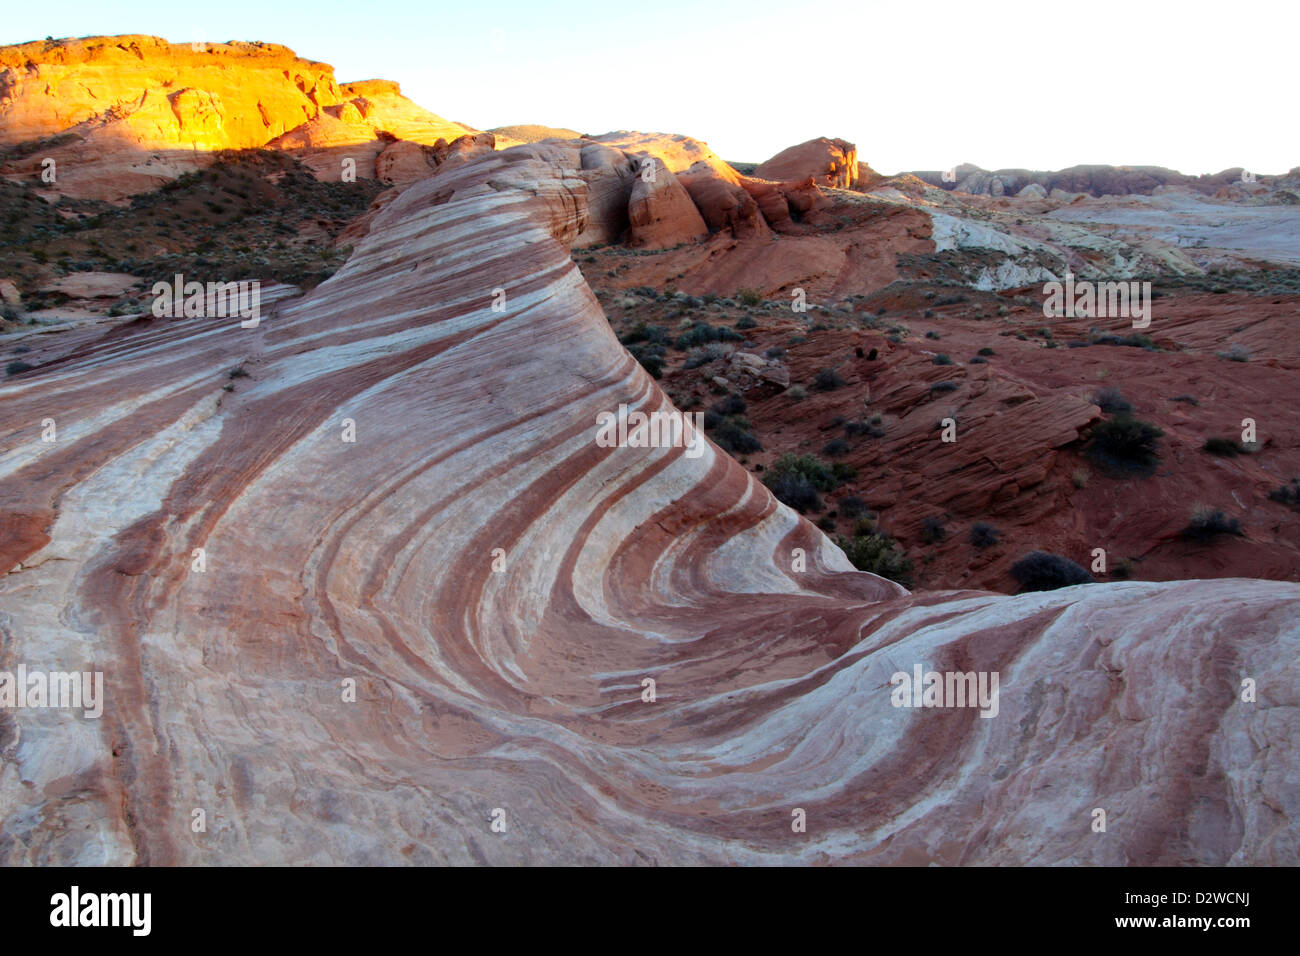 Sunset Over The Fire Wave, Valley Of Fire State Park, Nevada Stock Photo